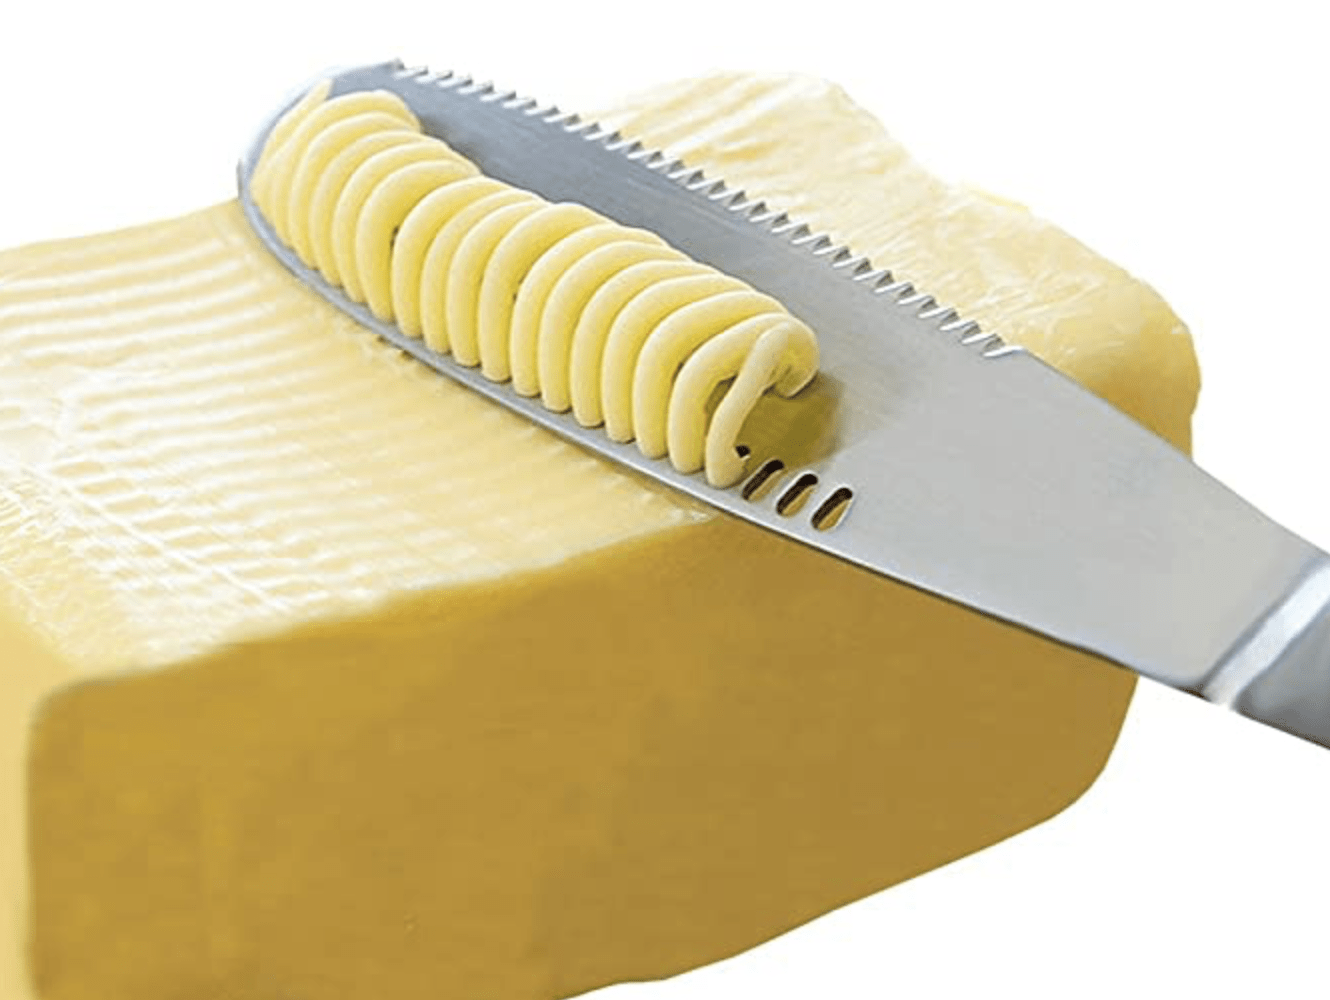 A butter spreader knife that will give you the most perfect toast.